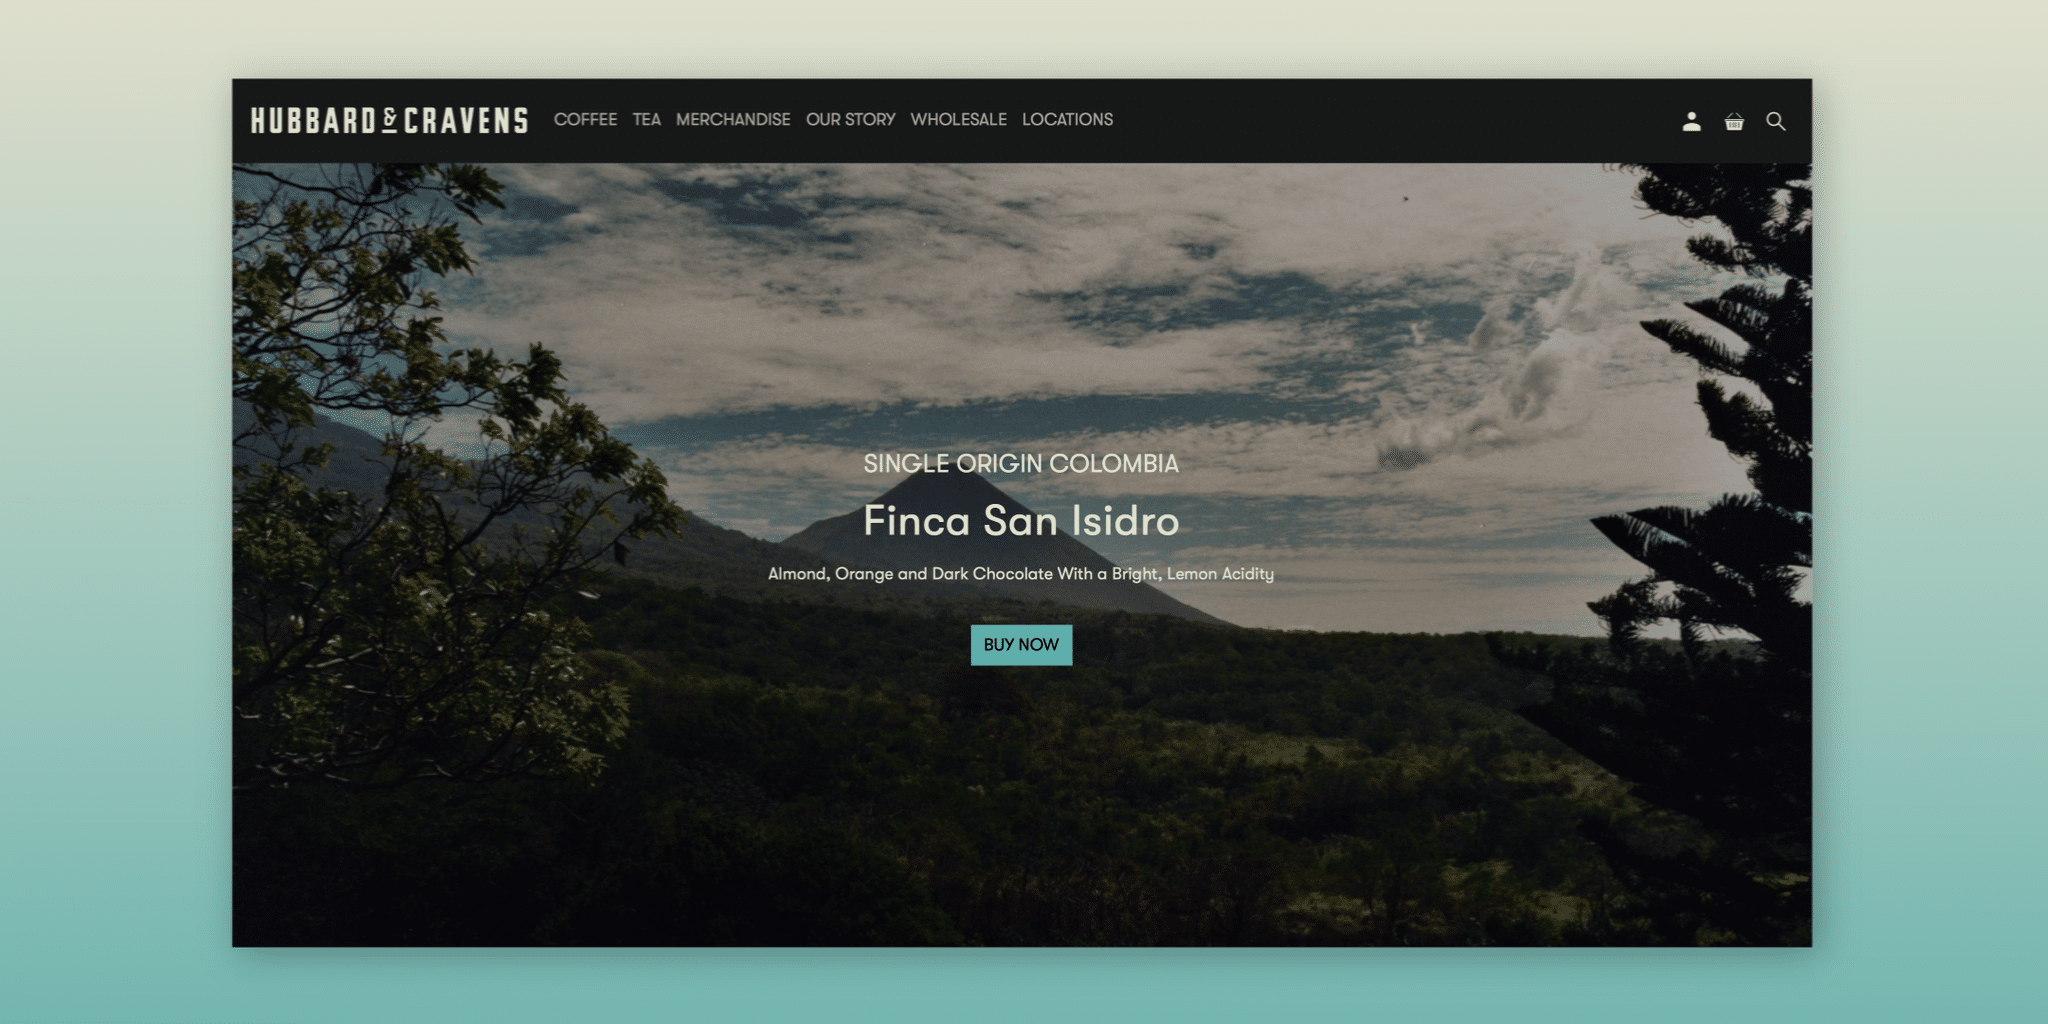 home page of the new website featuring the backdrop of Finca San Isidro